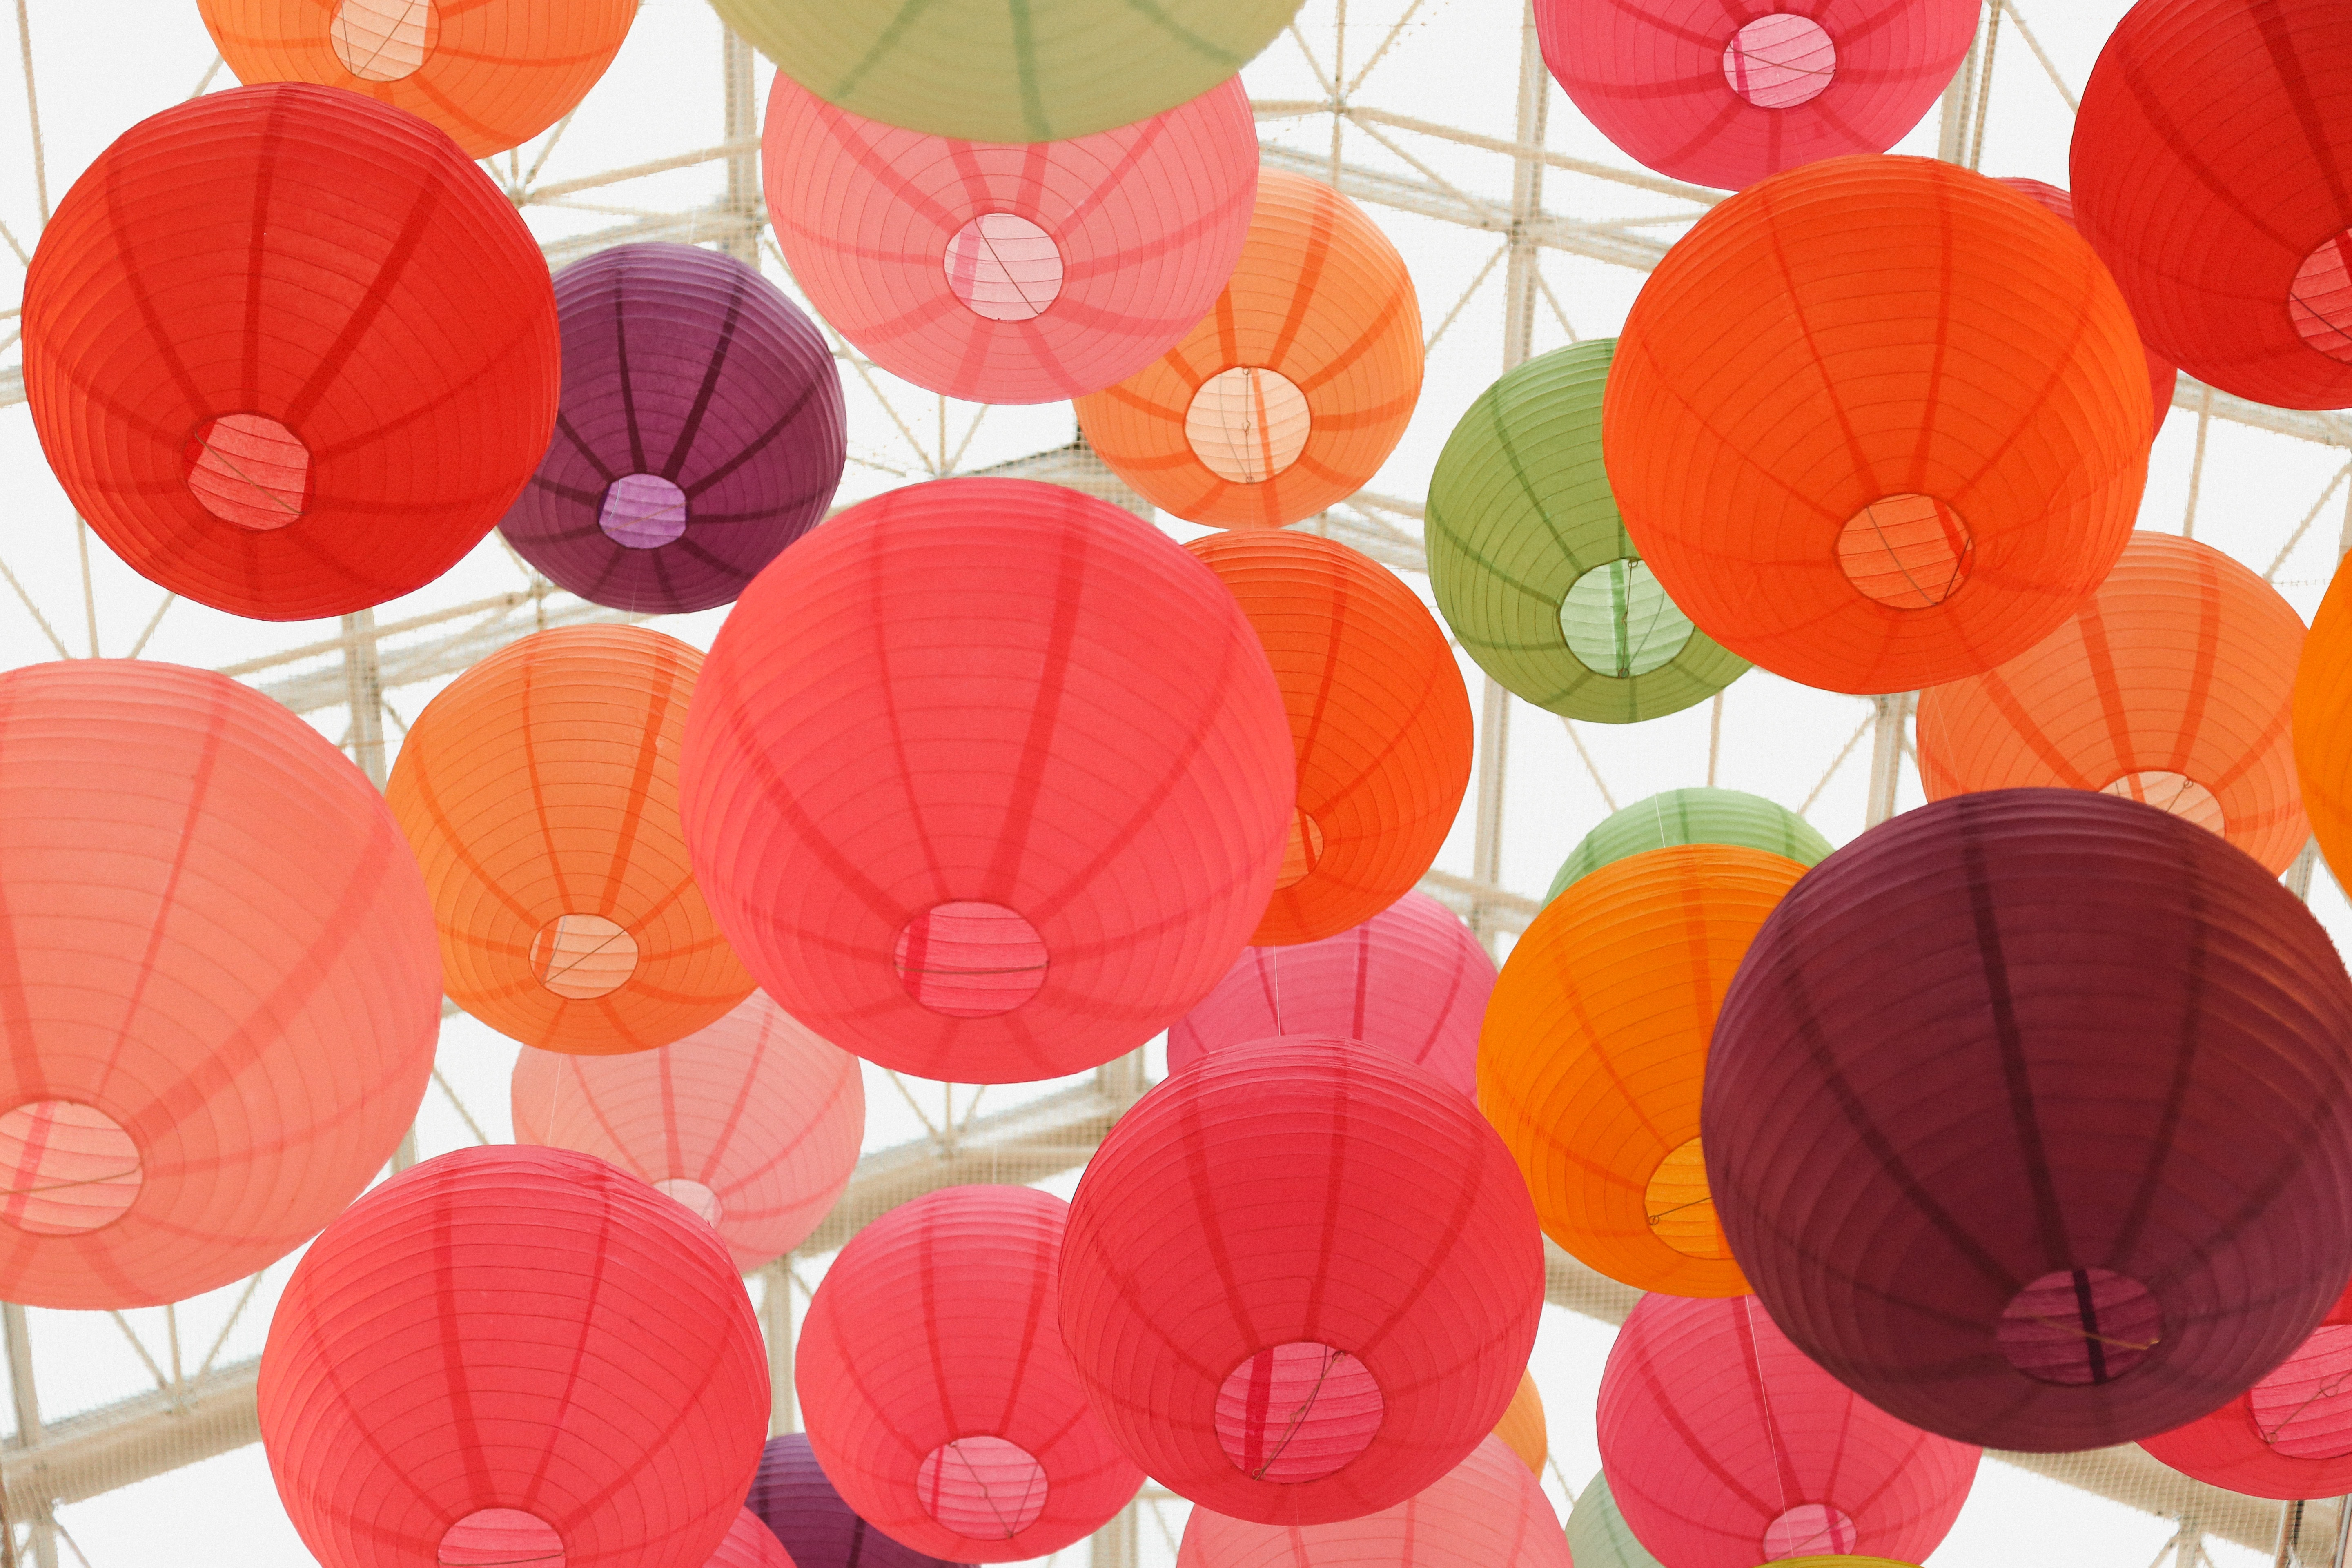 Large round colorful balloons floating to the roof of a glass house.